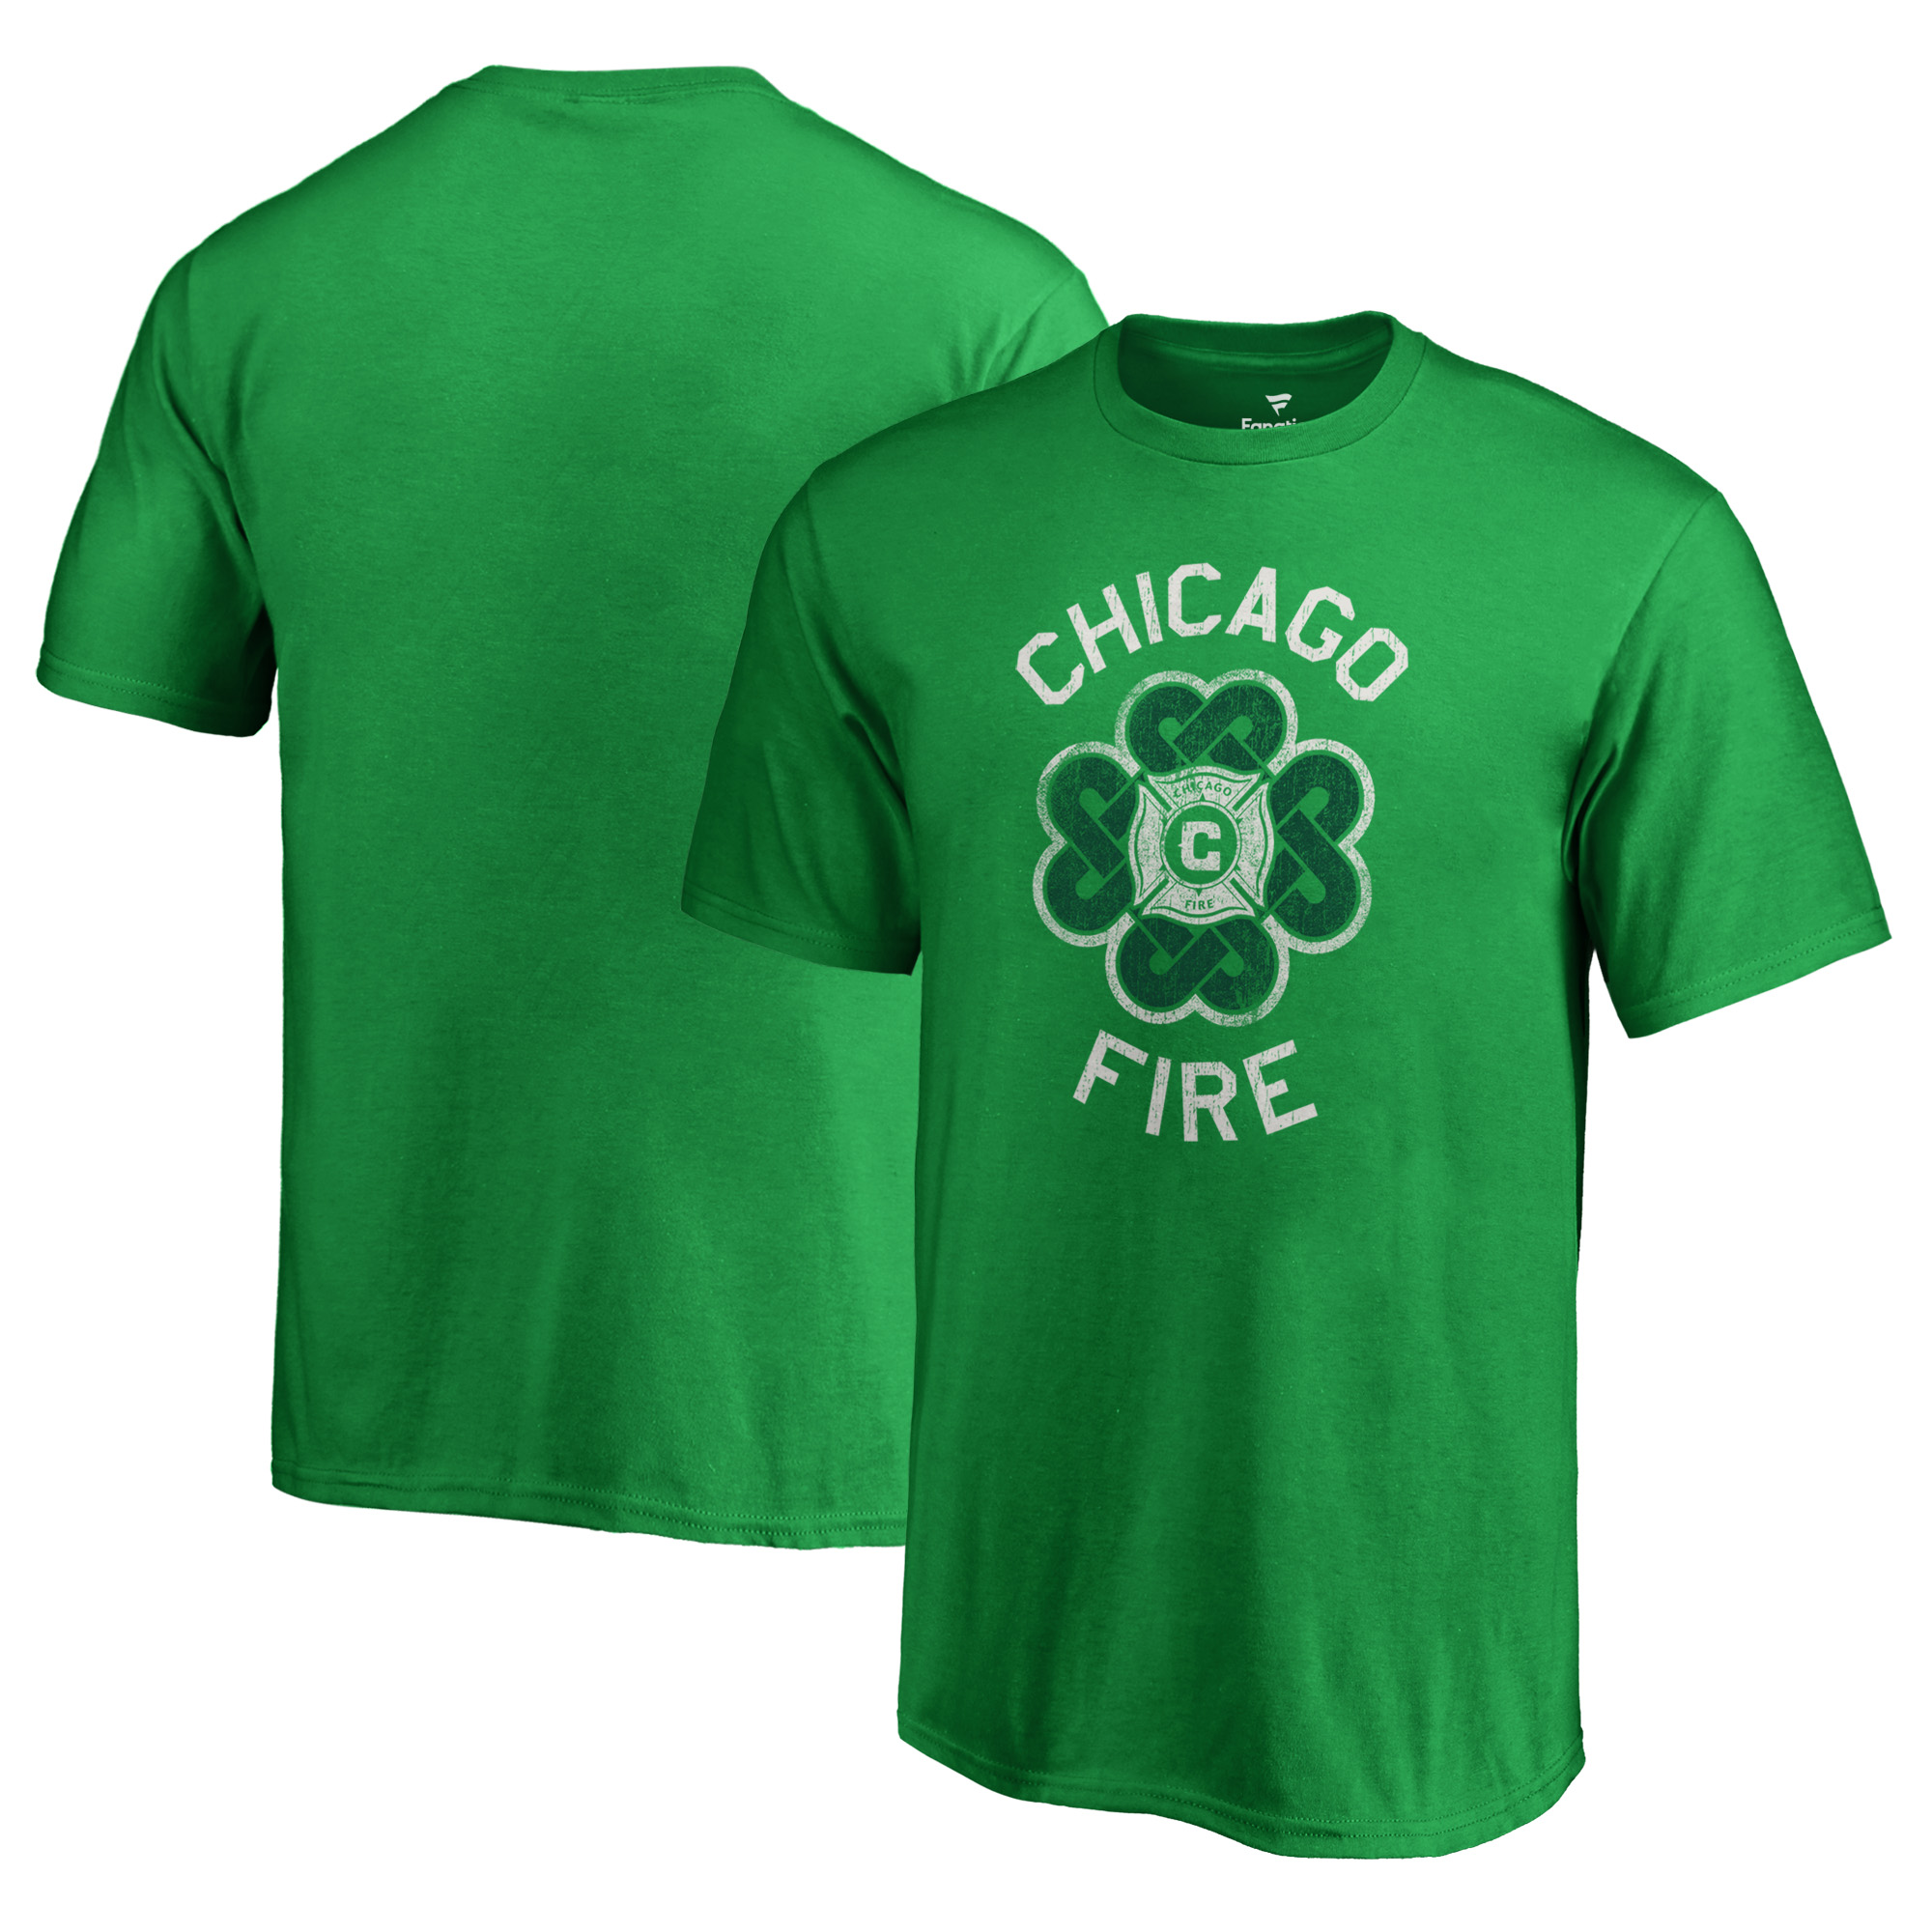 Chicago Fire Fanatics Branded Youth St. Patrick's Day Luck Tradition T-Shirt - Kelly Green